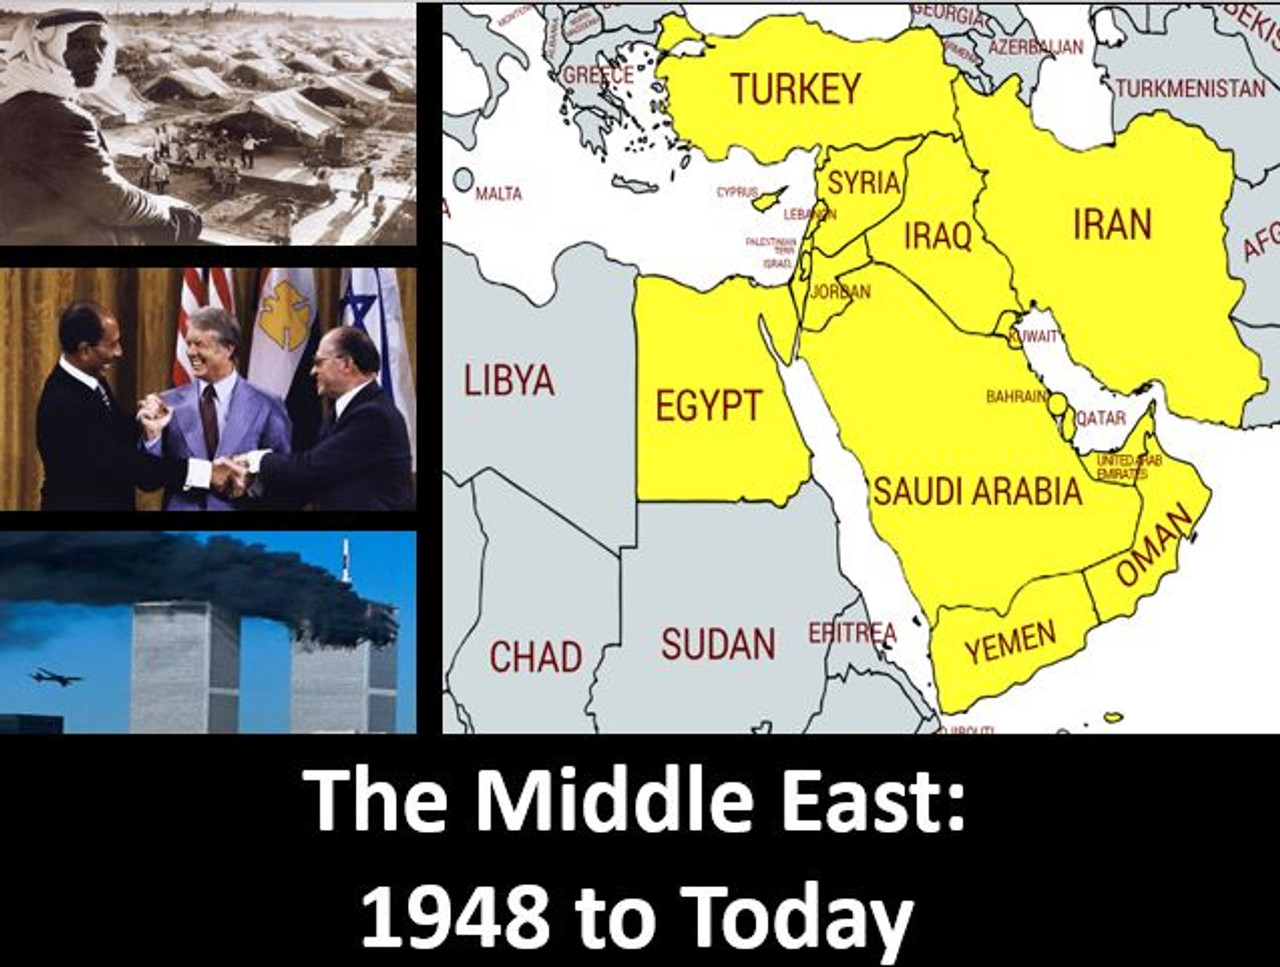 hight resolution of The Middle East \u0026 the World: 1948 to Today: Power Point